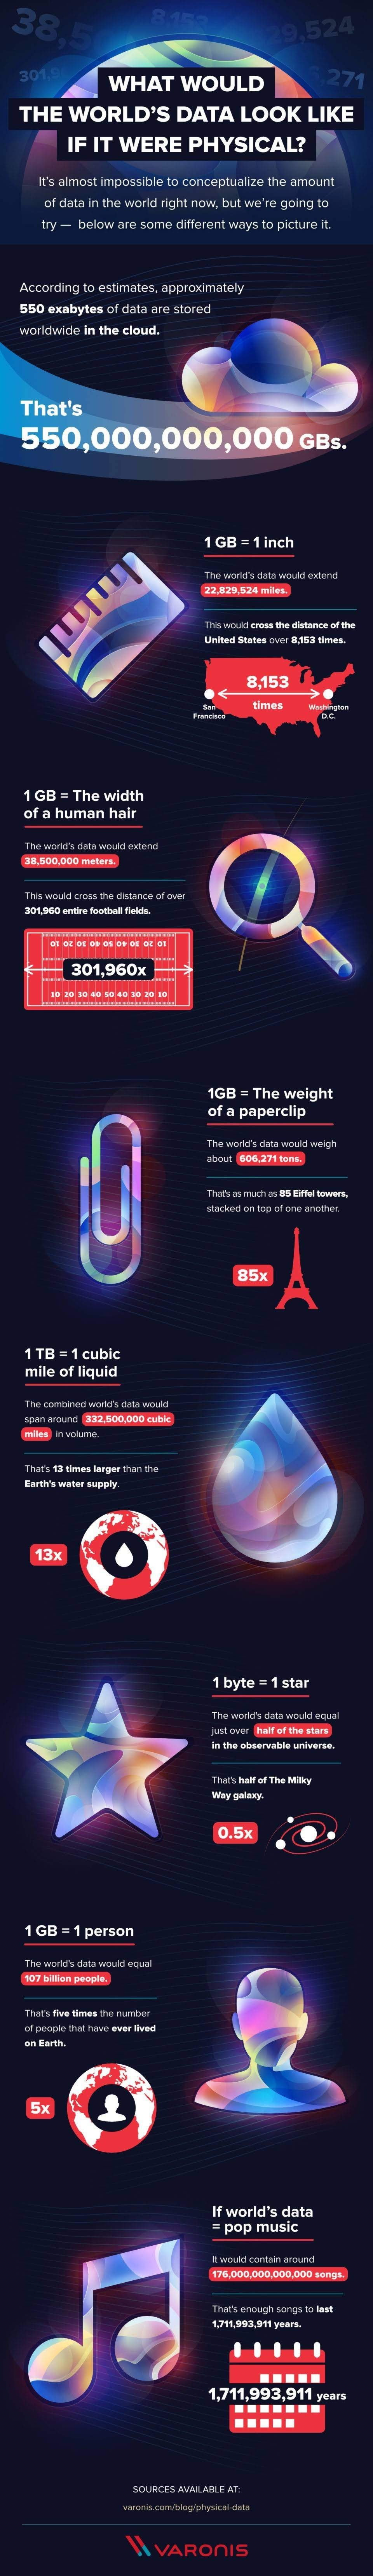 What Would The World's Data Look Like if it Were Physical? #infographic